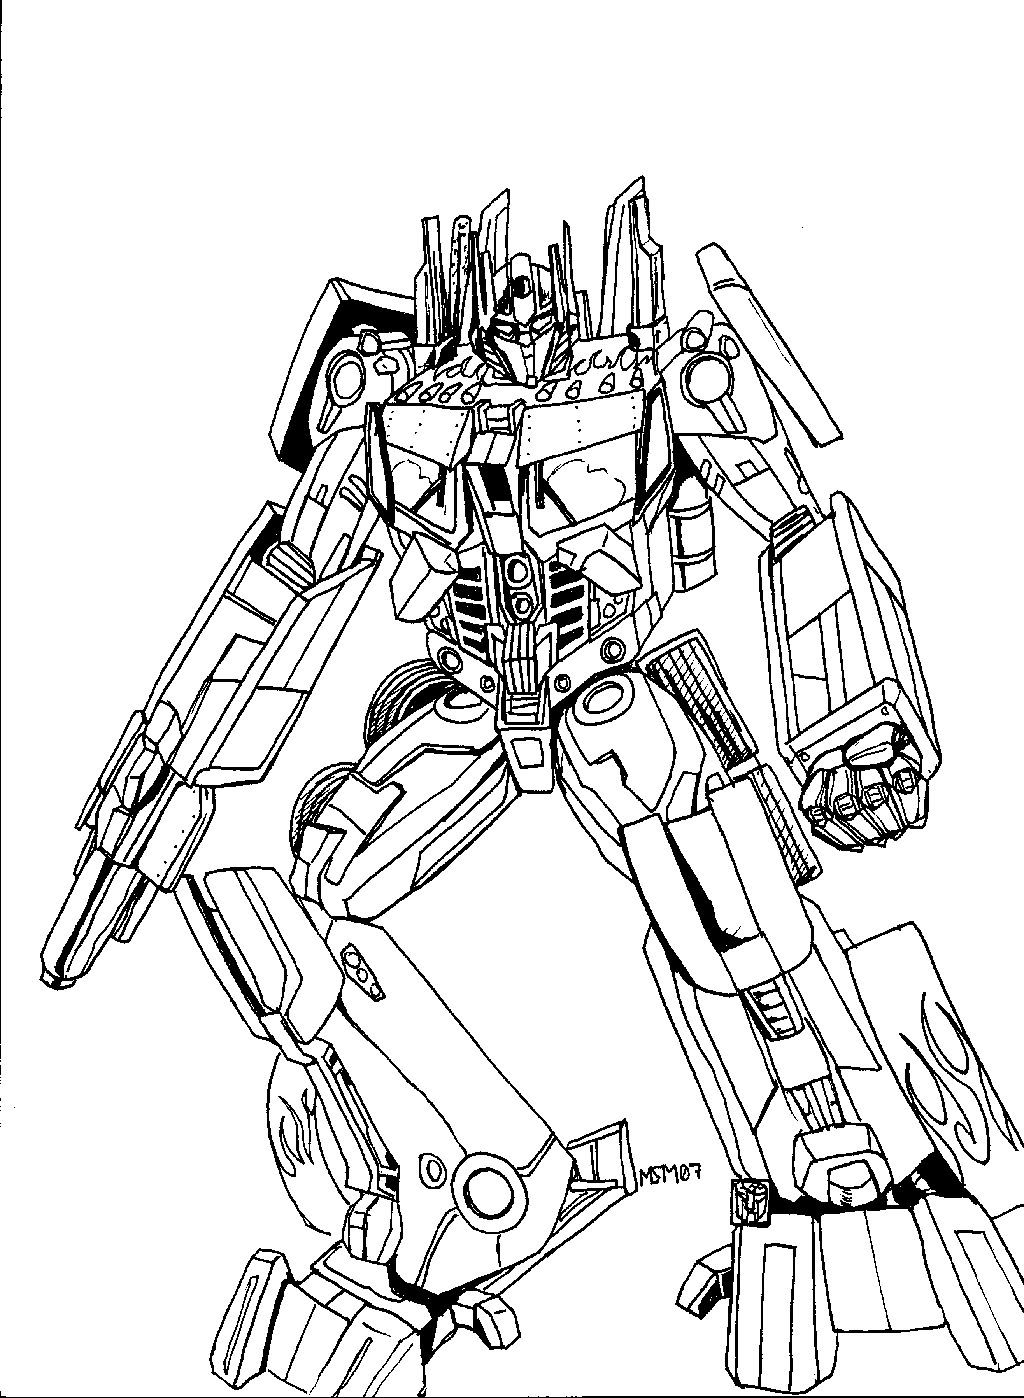 Free Printable Transformers Coloring Pages For Kids | Pinterest